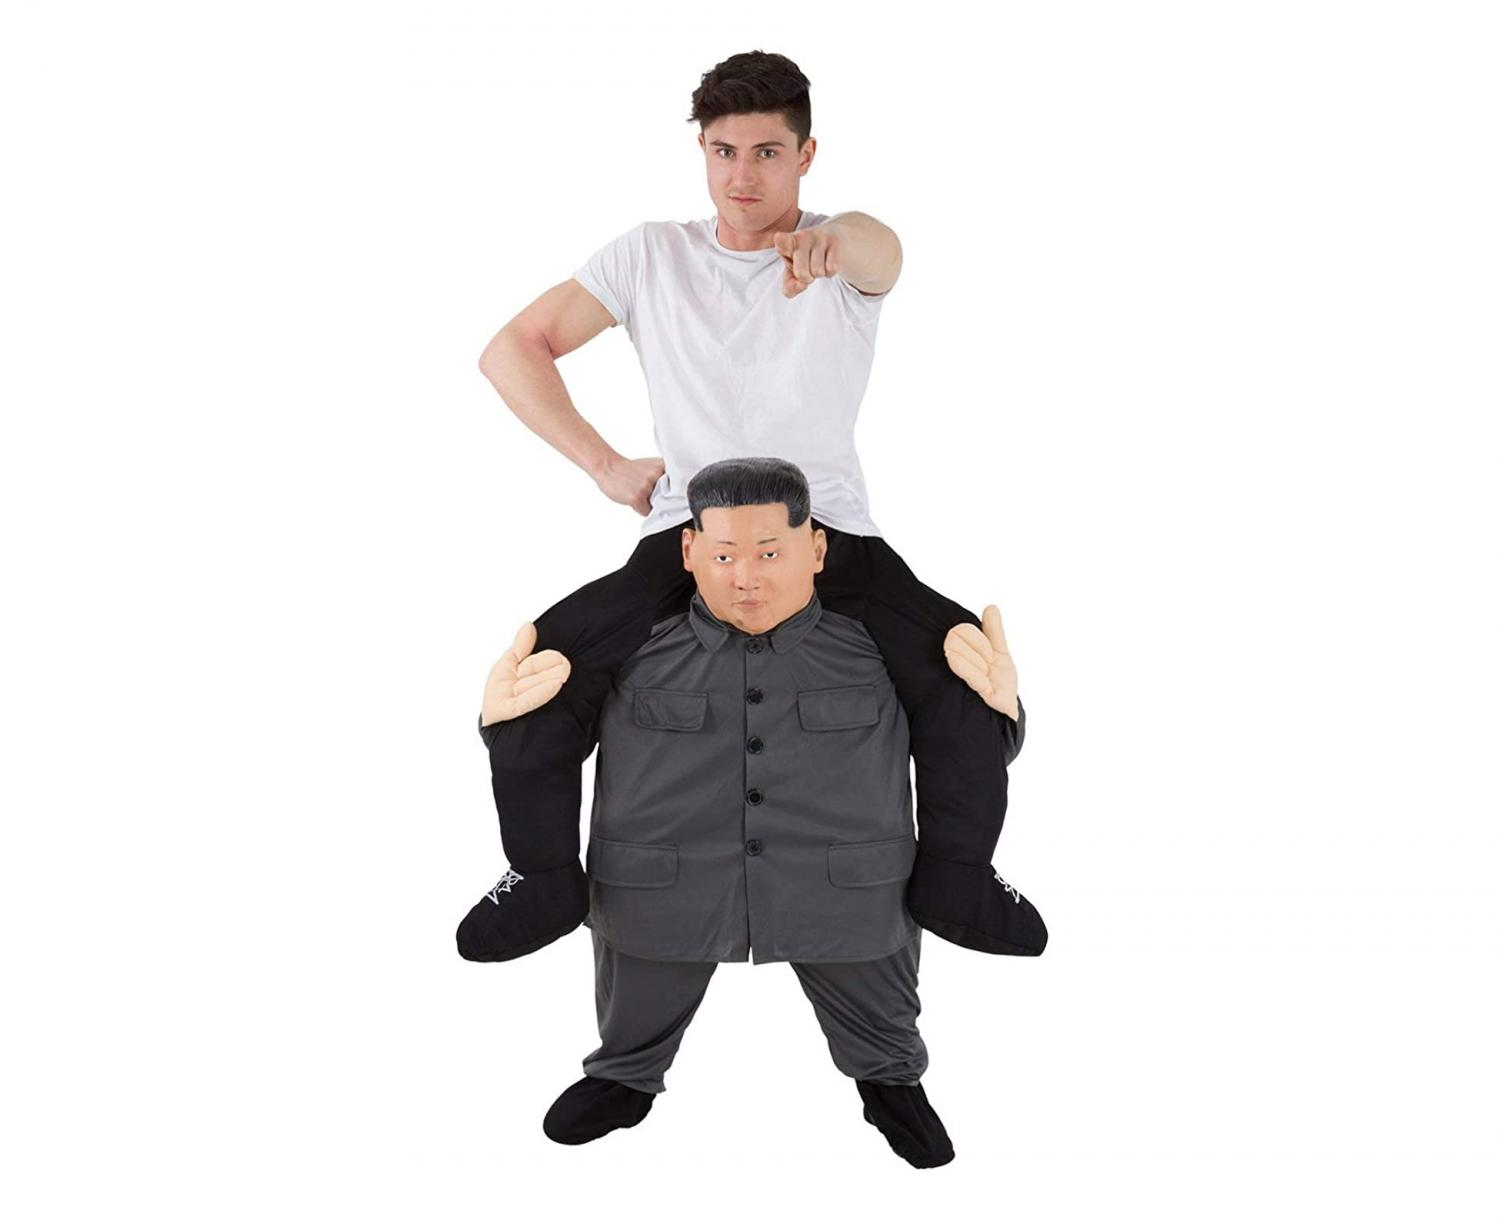 Ride-On Kim Jong Un Halloween Costume